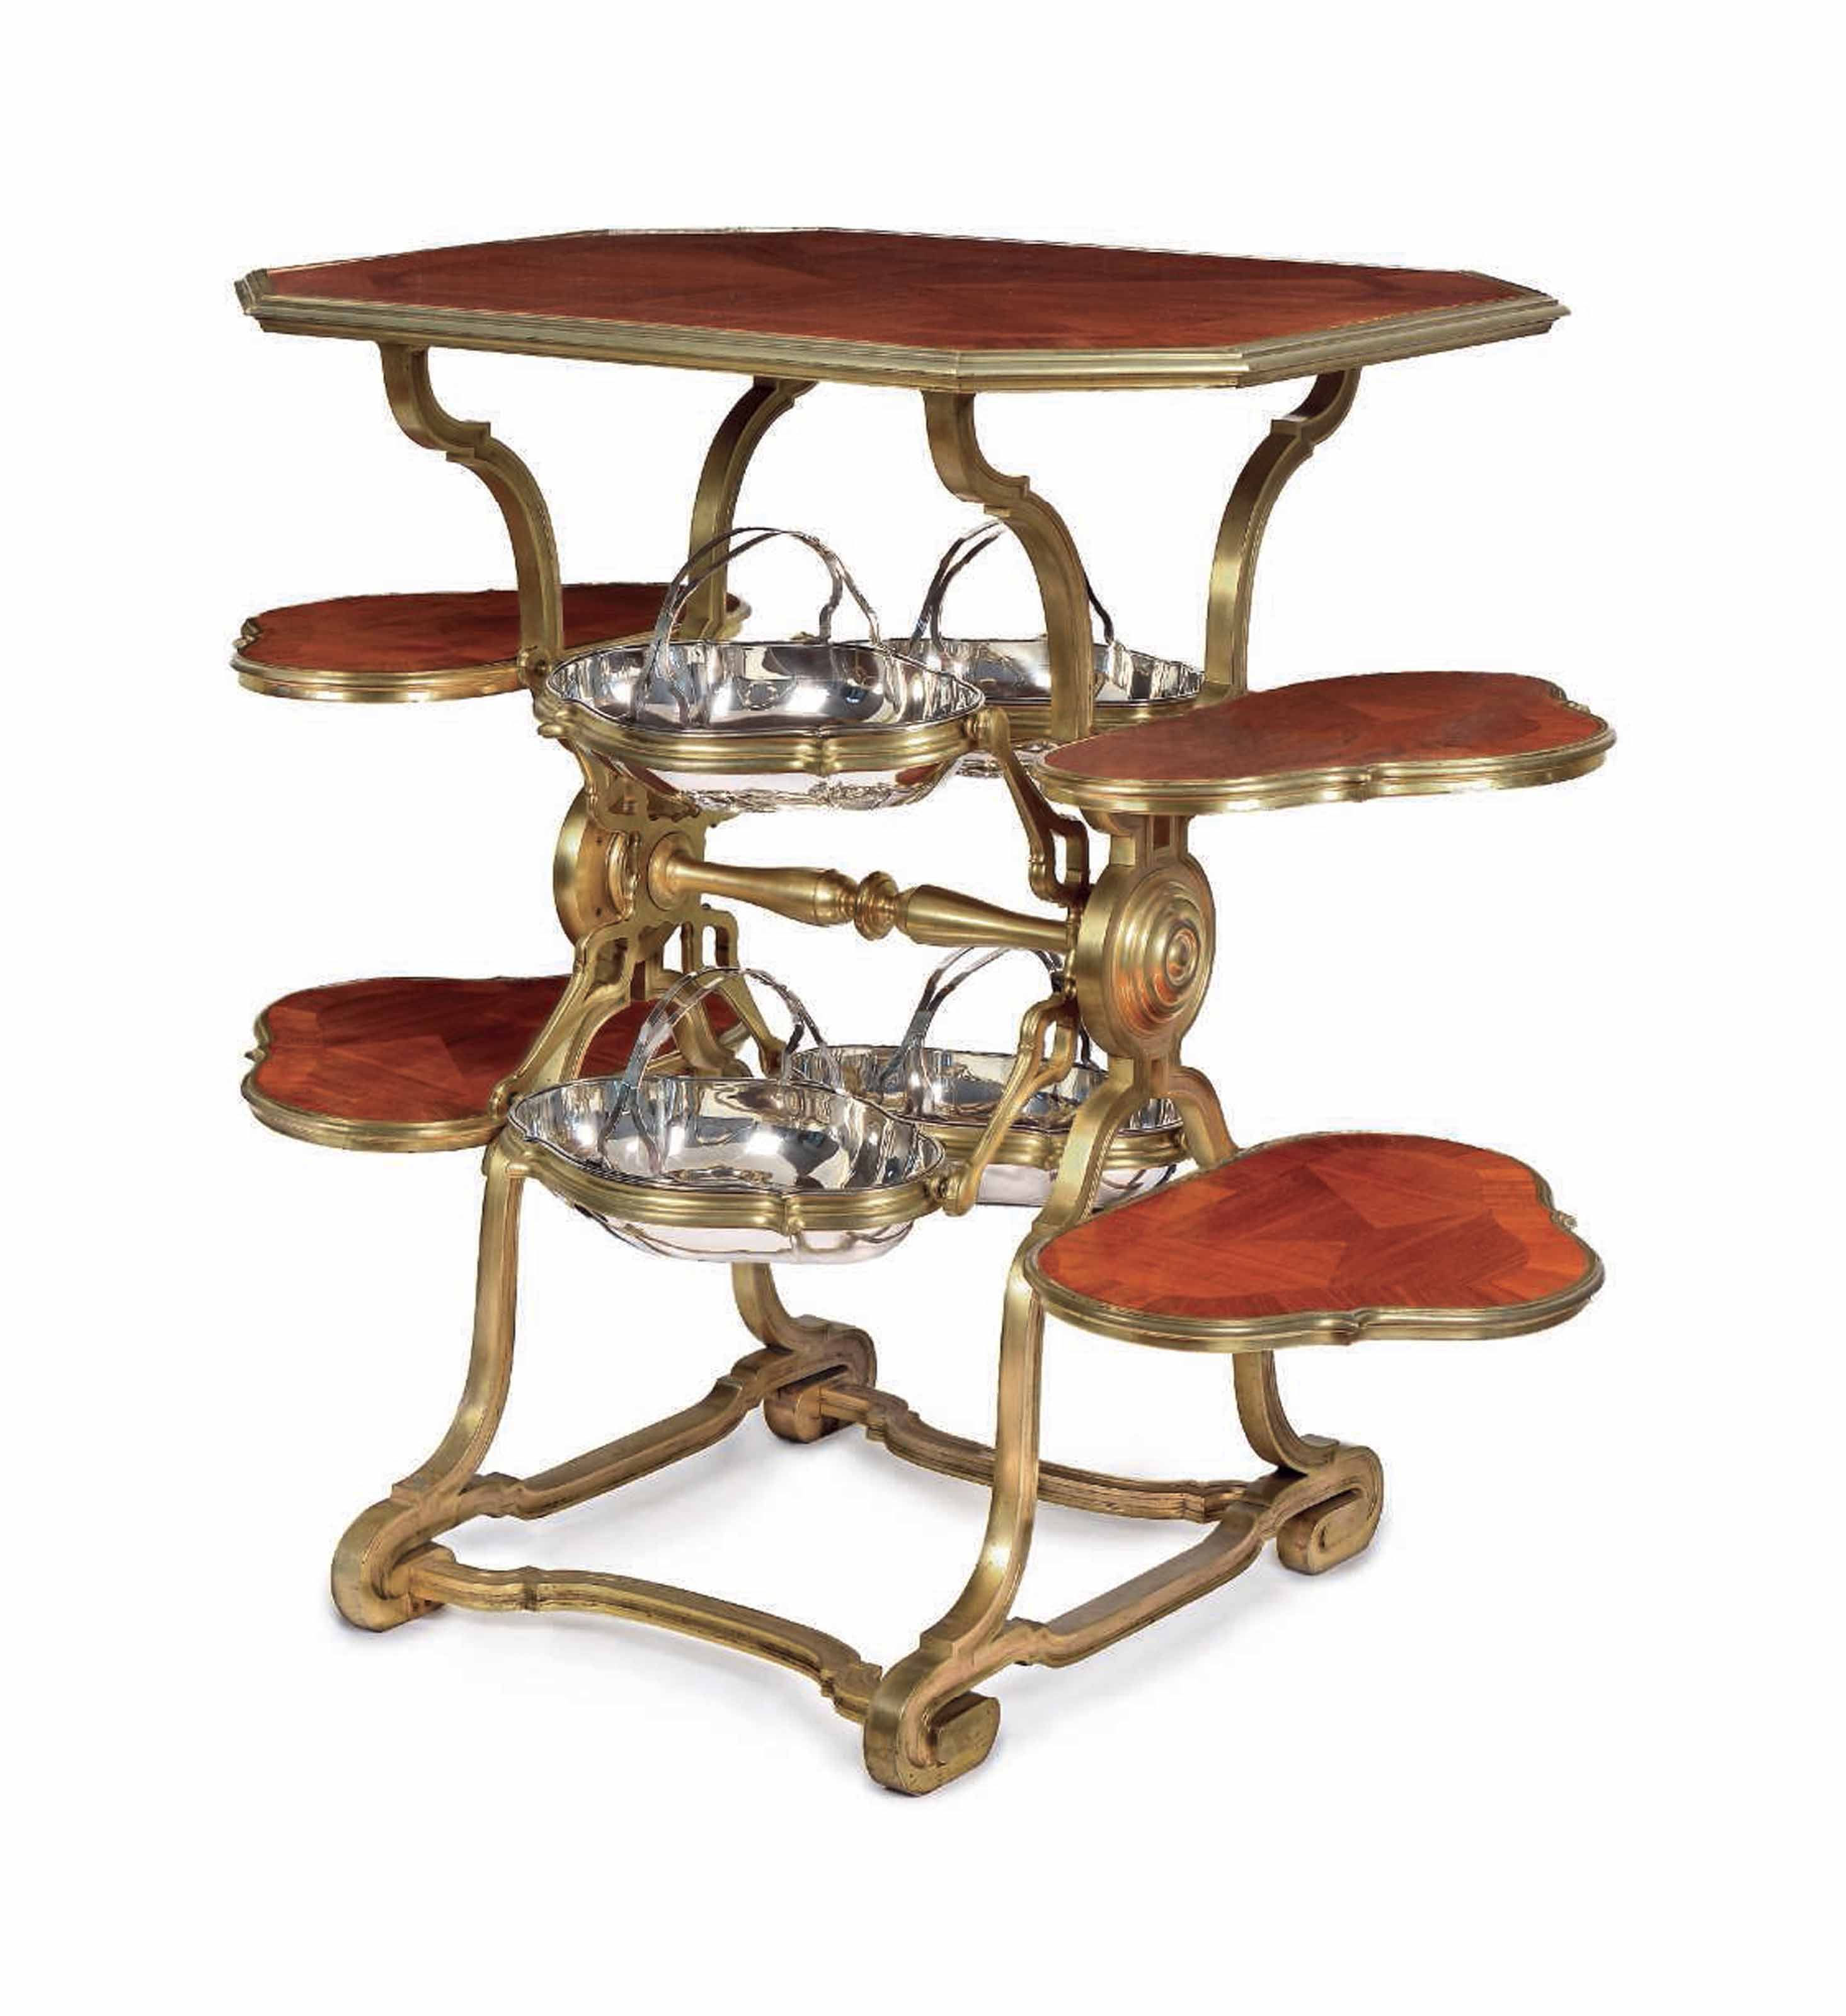 AN UNUSUAL FRENCH ORMOLU AND SILVER-MOUNTED MAHOGANY 'FERRIS WHEEL' SERVING-TABLE